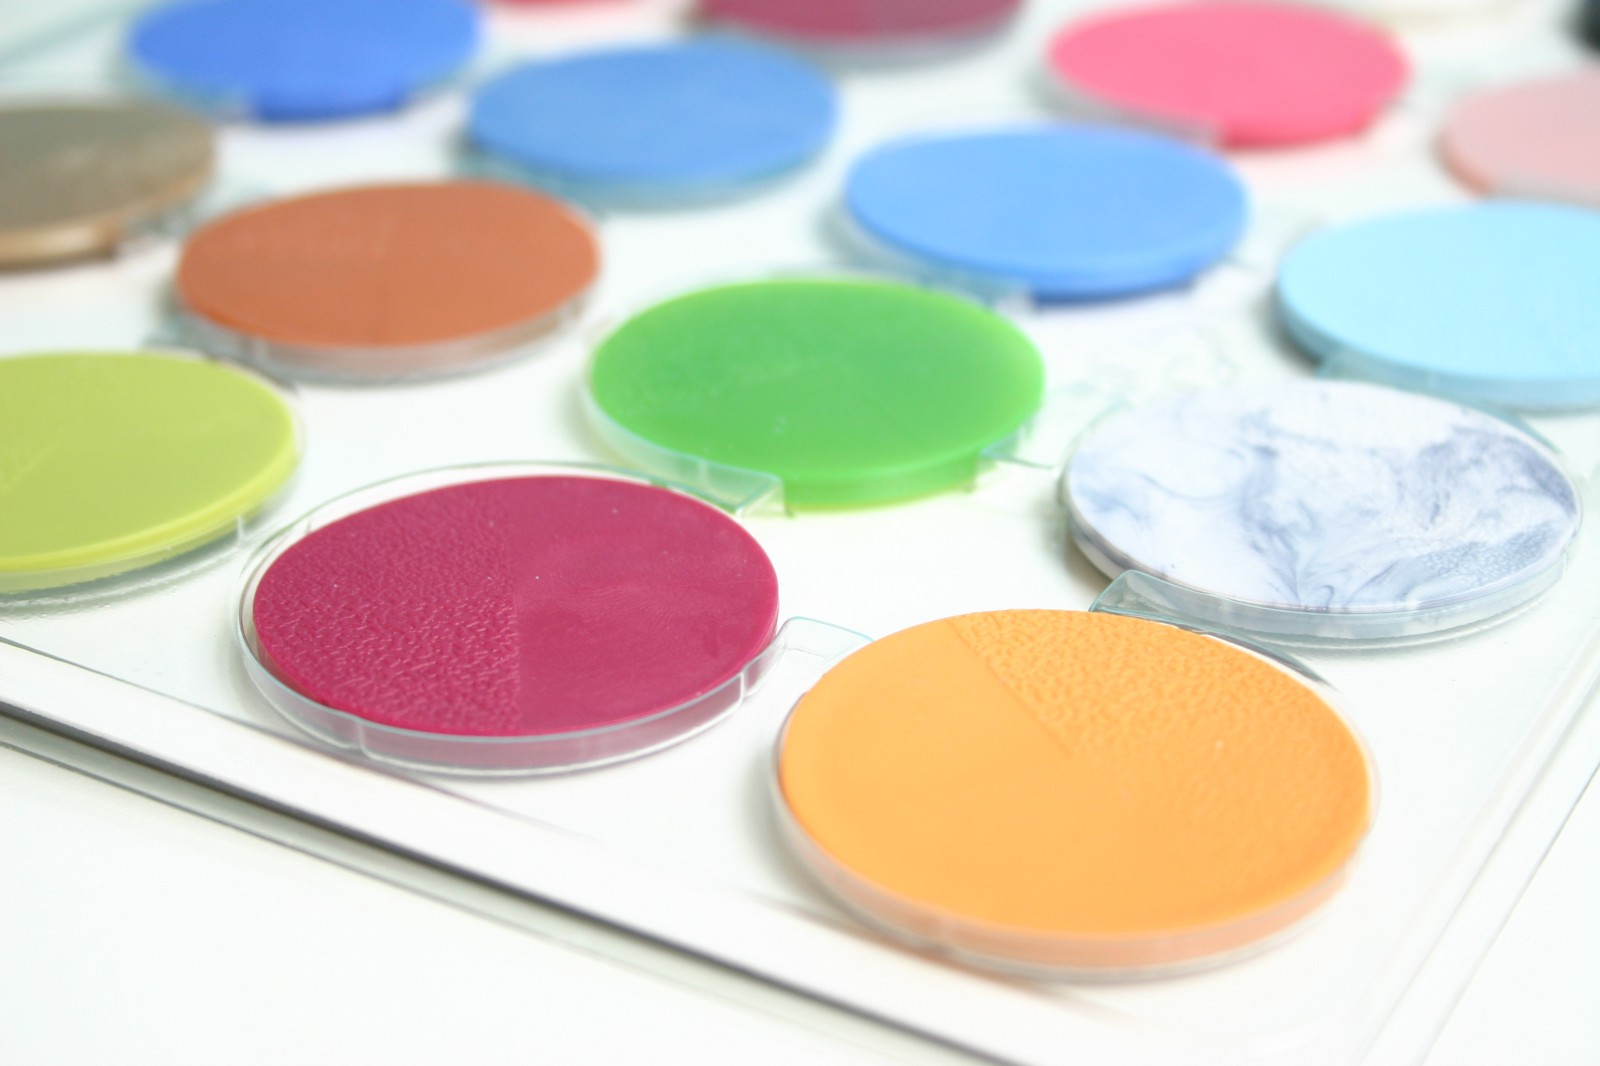 A sample kit of different TPE formulations from a TPE manufacturer.